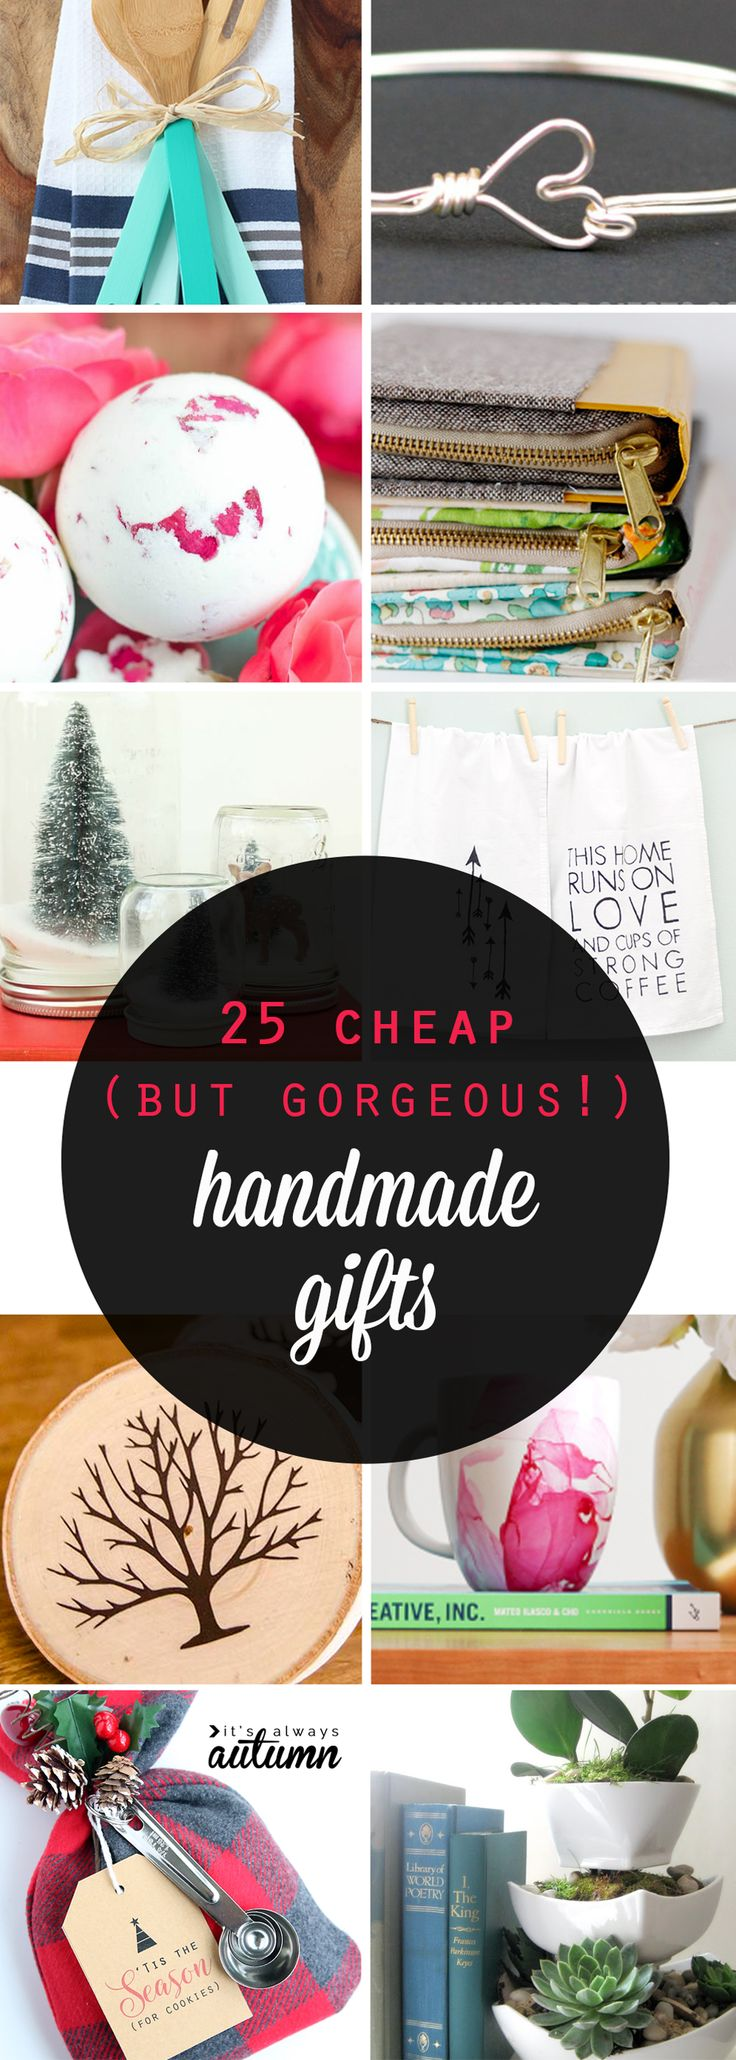 DIY Gifts Ideas : Great list of gorgeous handmade gifts that are ...